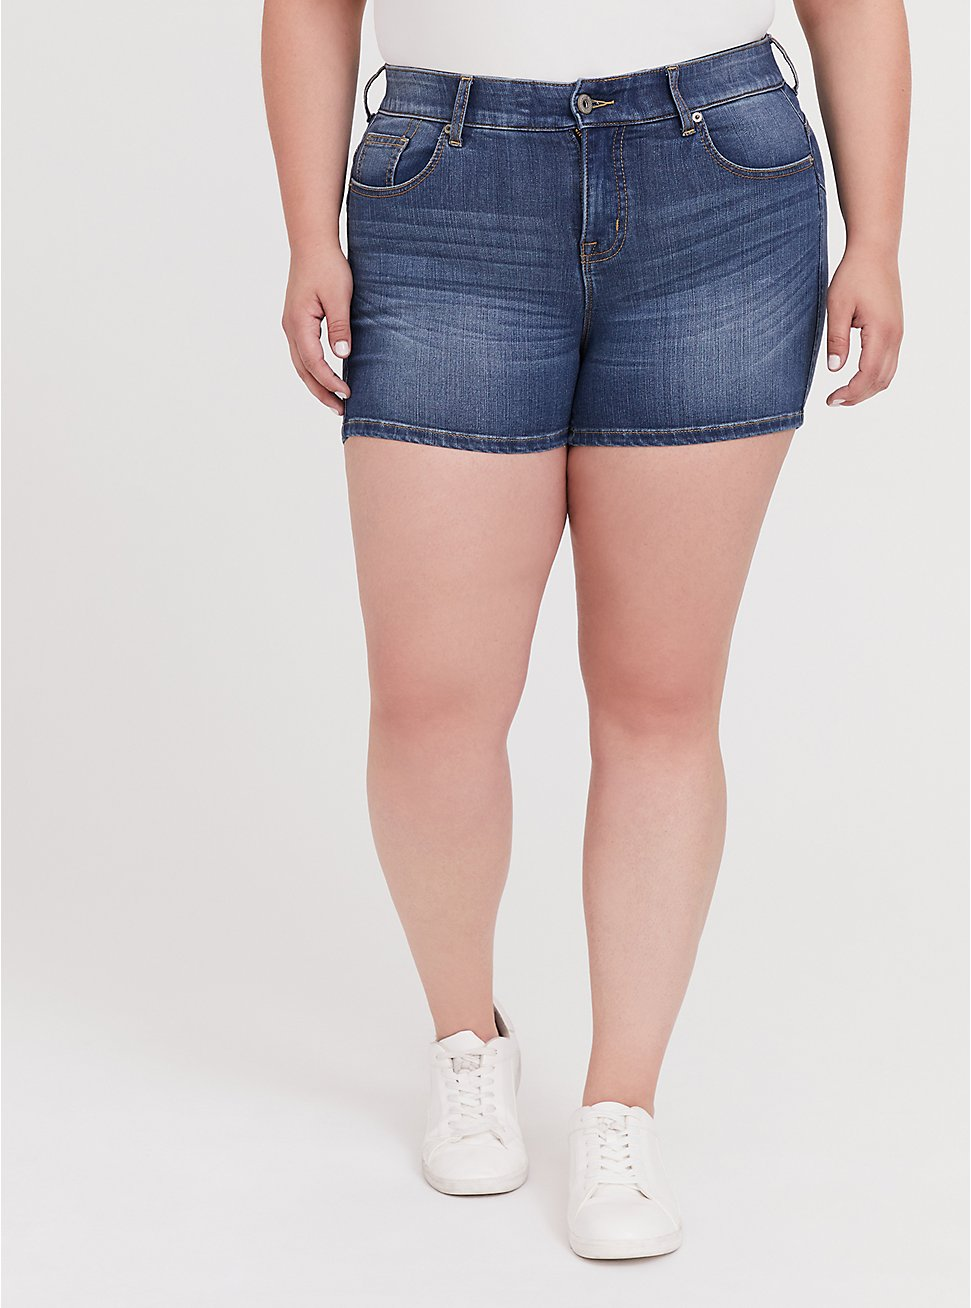 Bombshell Skinny Short Short - Premium Stretch Medium Wash, TIDES, hi-res